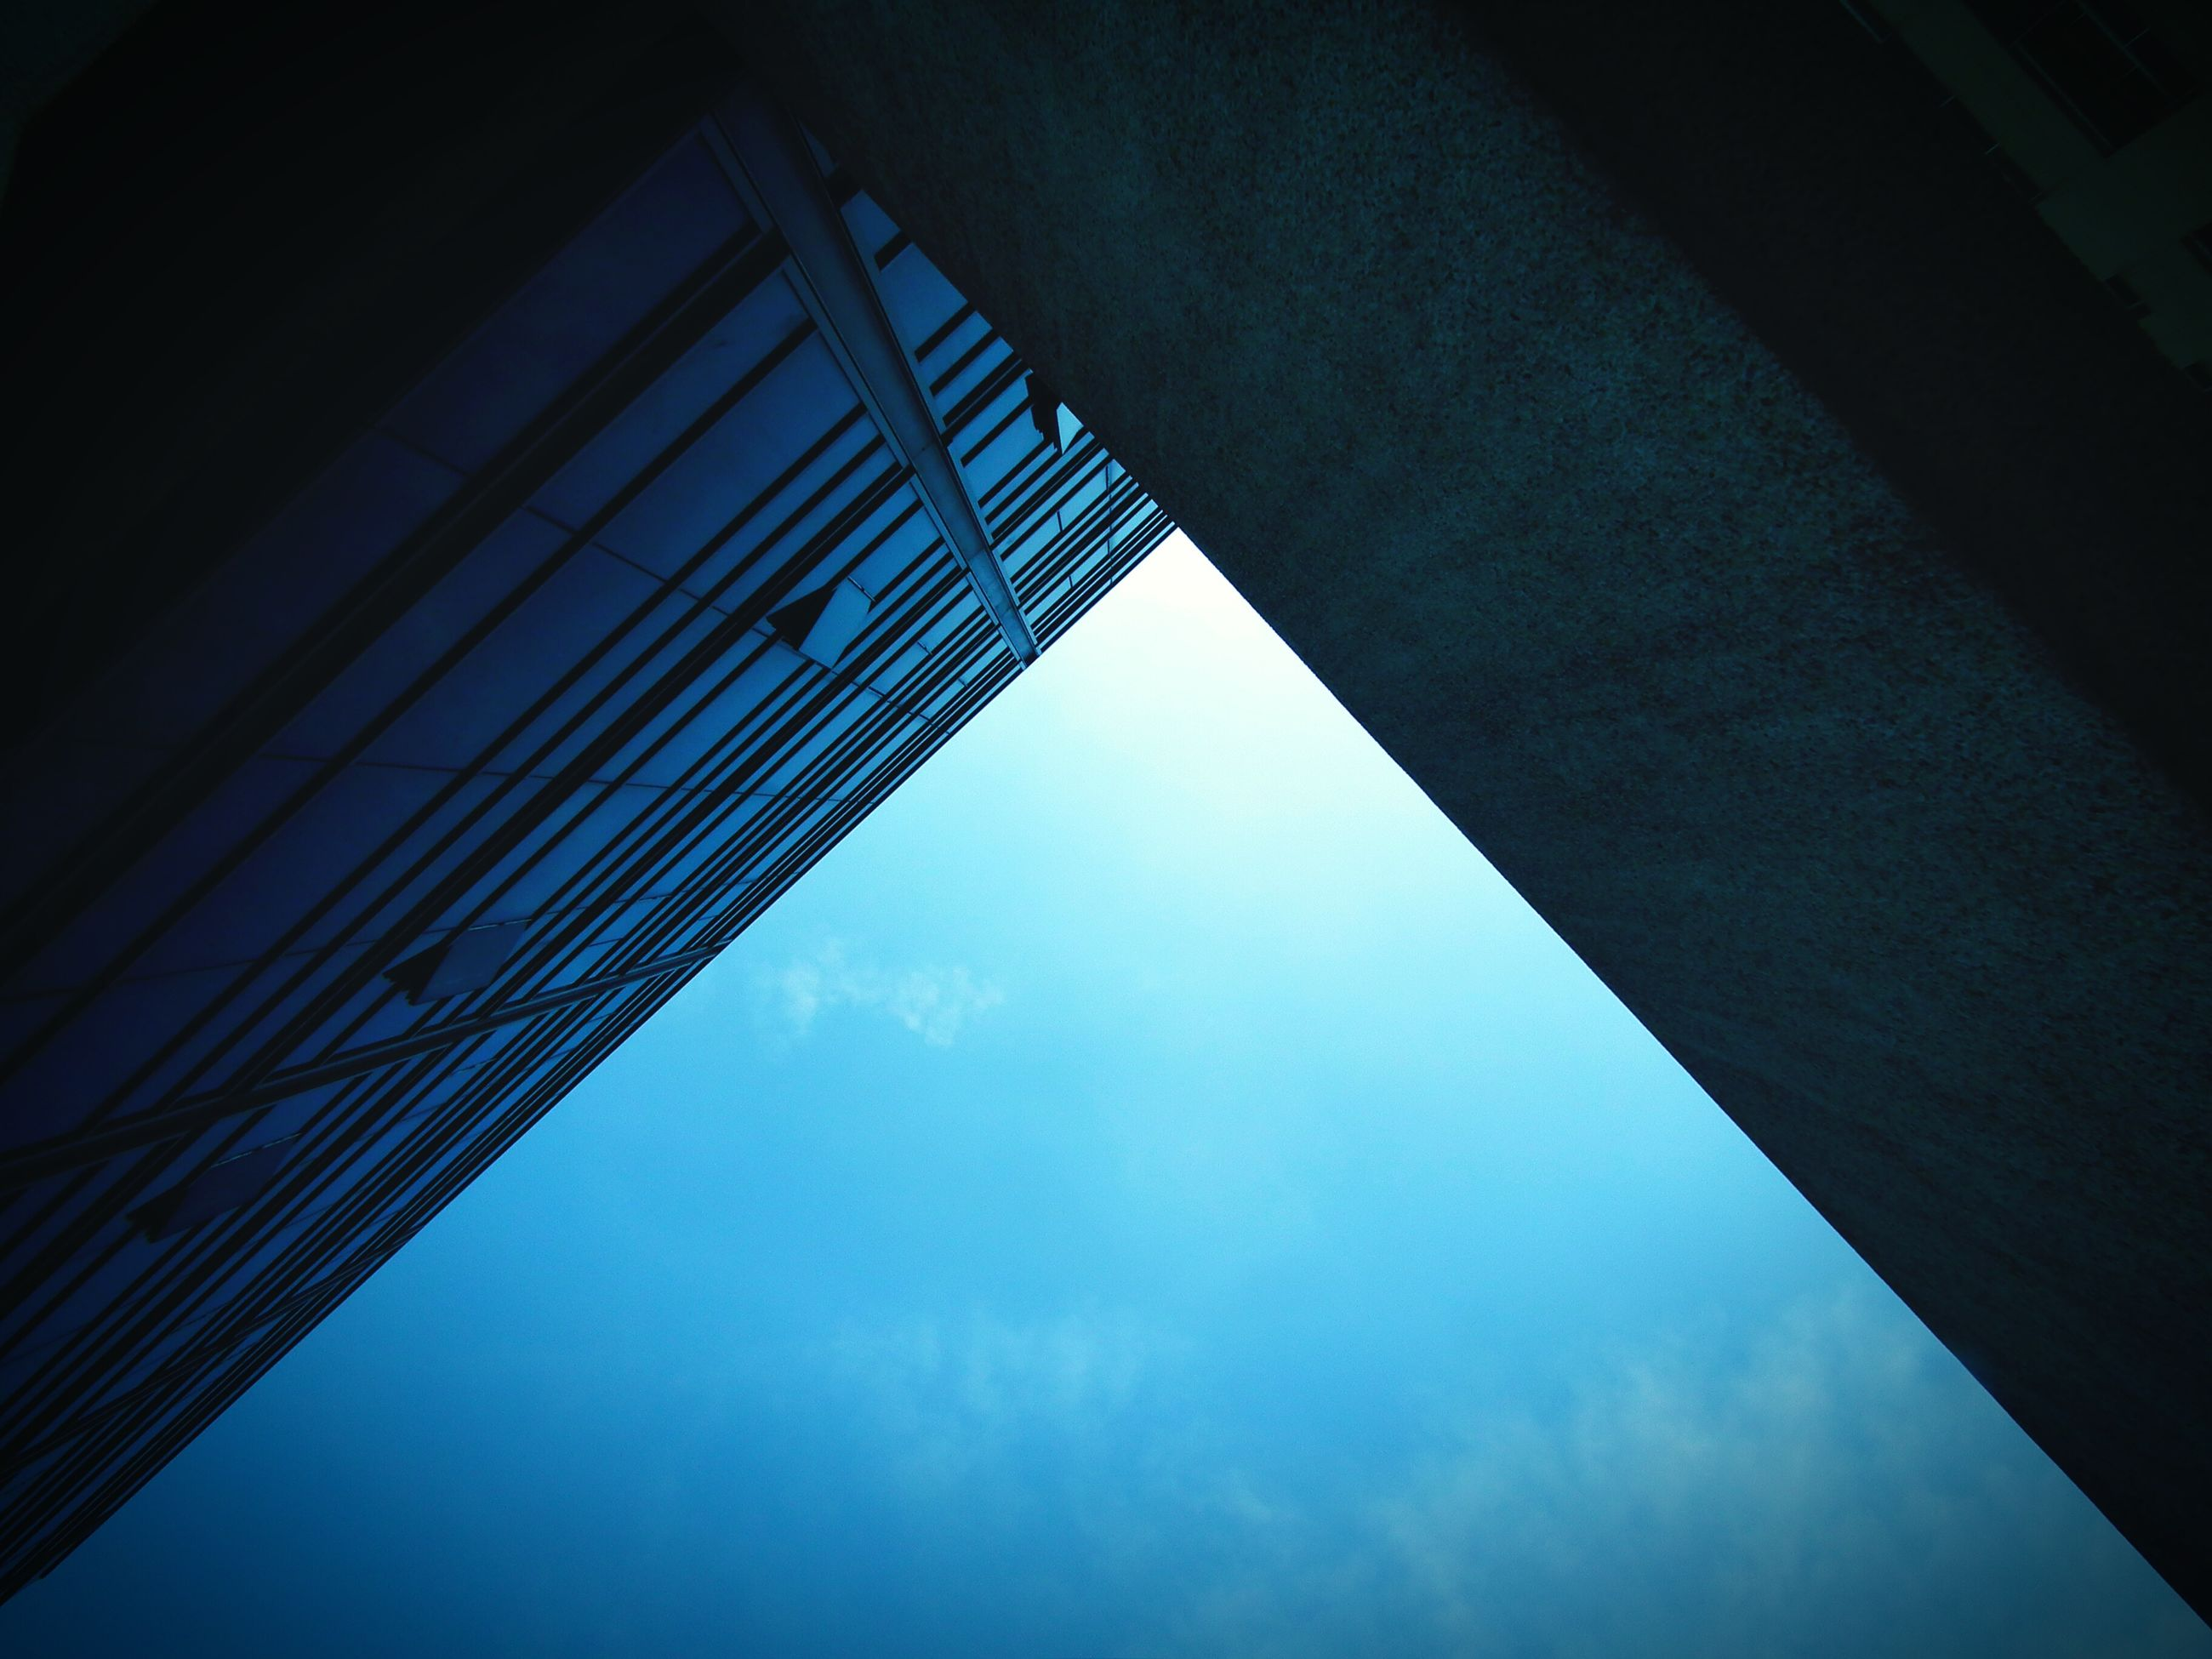 low angle view, architecture, built structure, sky, building exterior, reflection, modern, glass - material, cloud - sky, directly below, building, blue, office building, window, no people, tall - high, cloud, day, city, outdoors